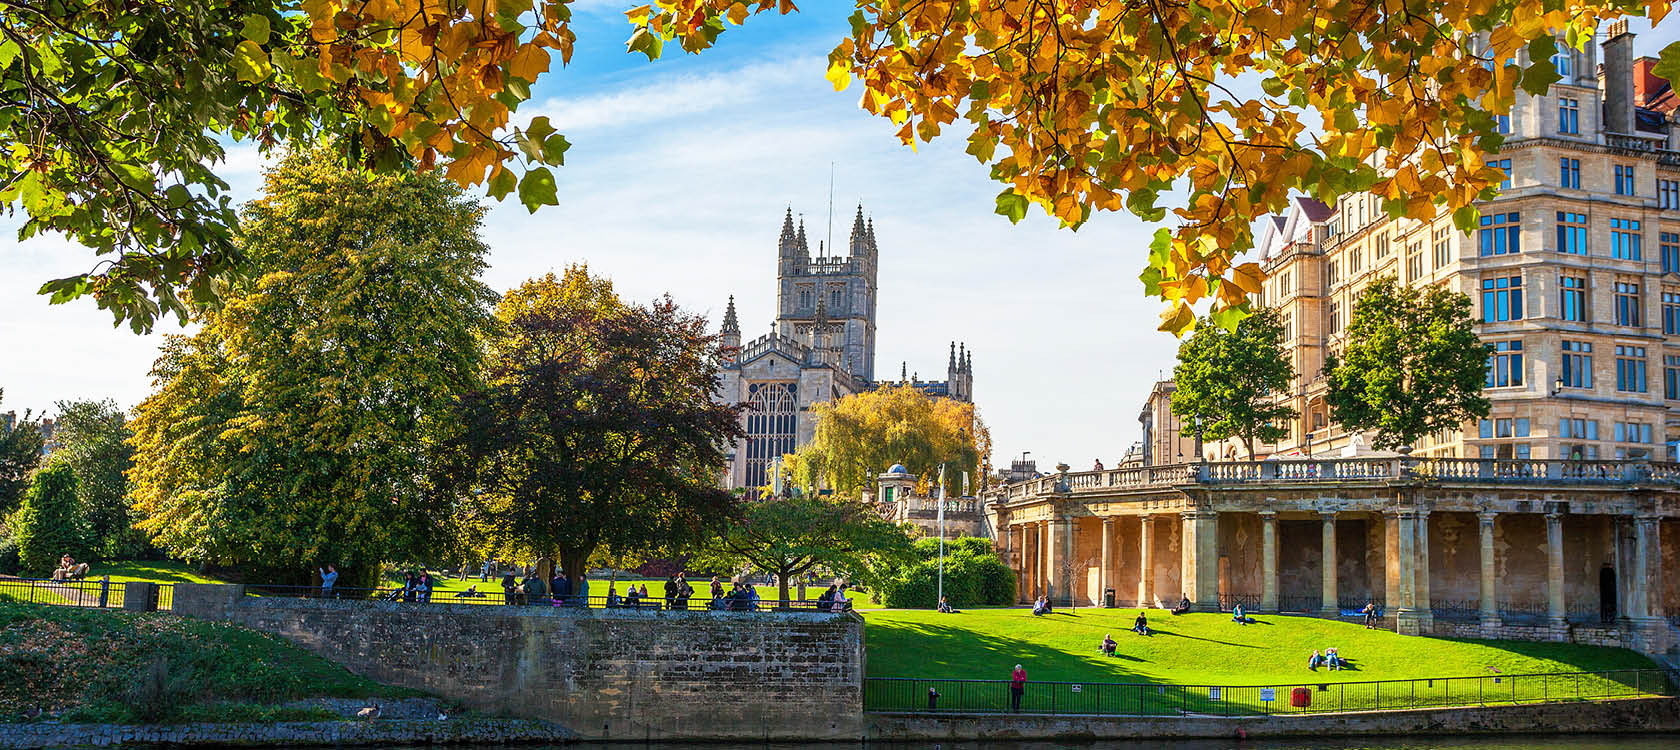 upplev stonehedge, bath, universitetsstaden oxford och highclere castle p� resa till england